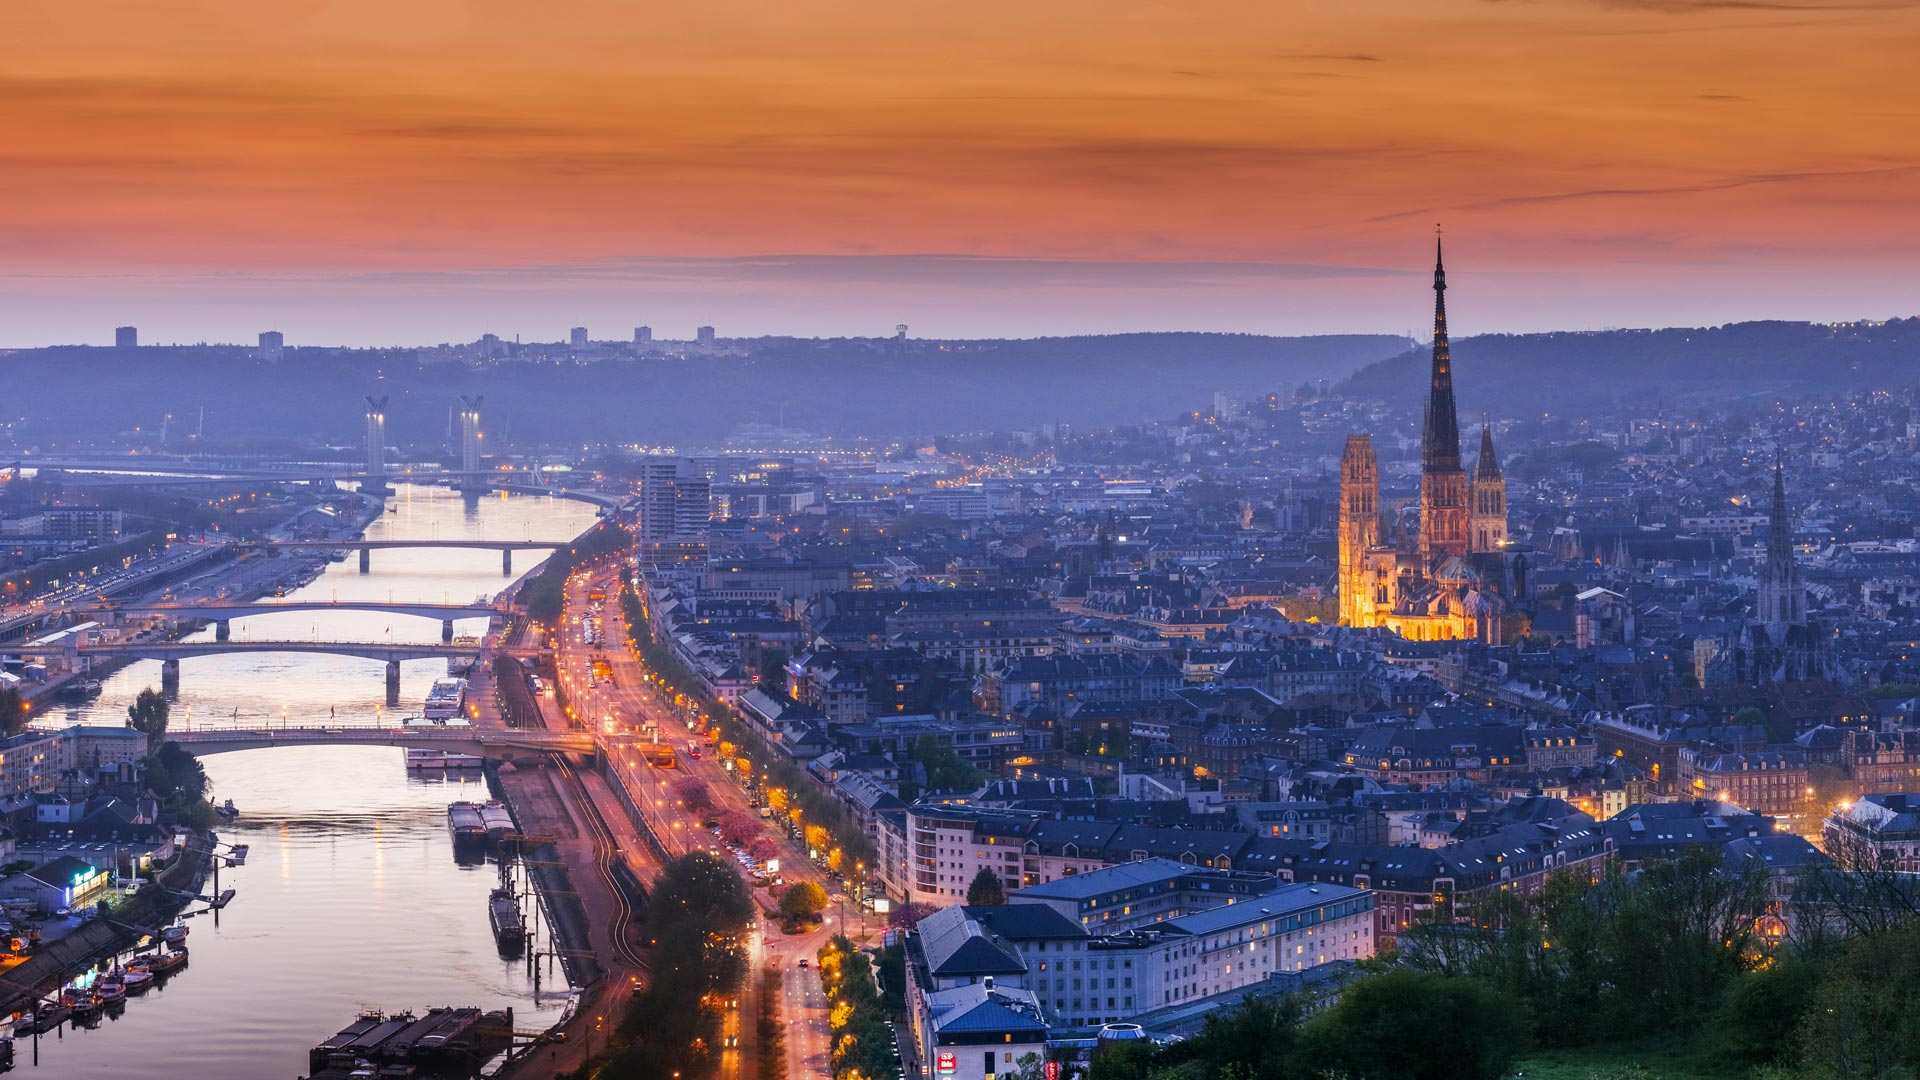 Rouen France Bing Wallpaper Download 1920x1080